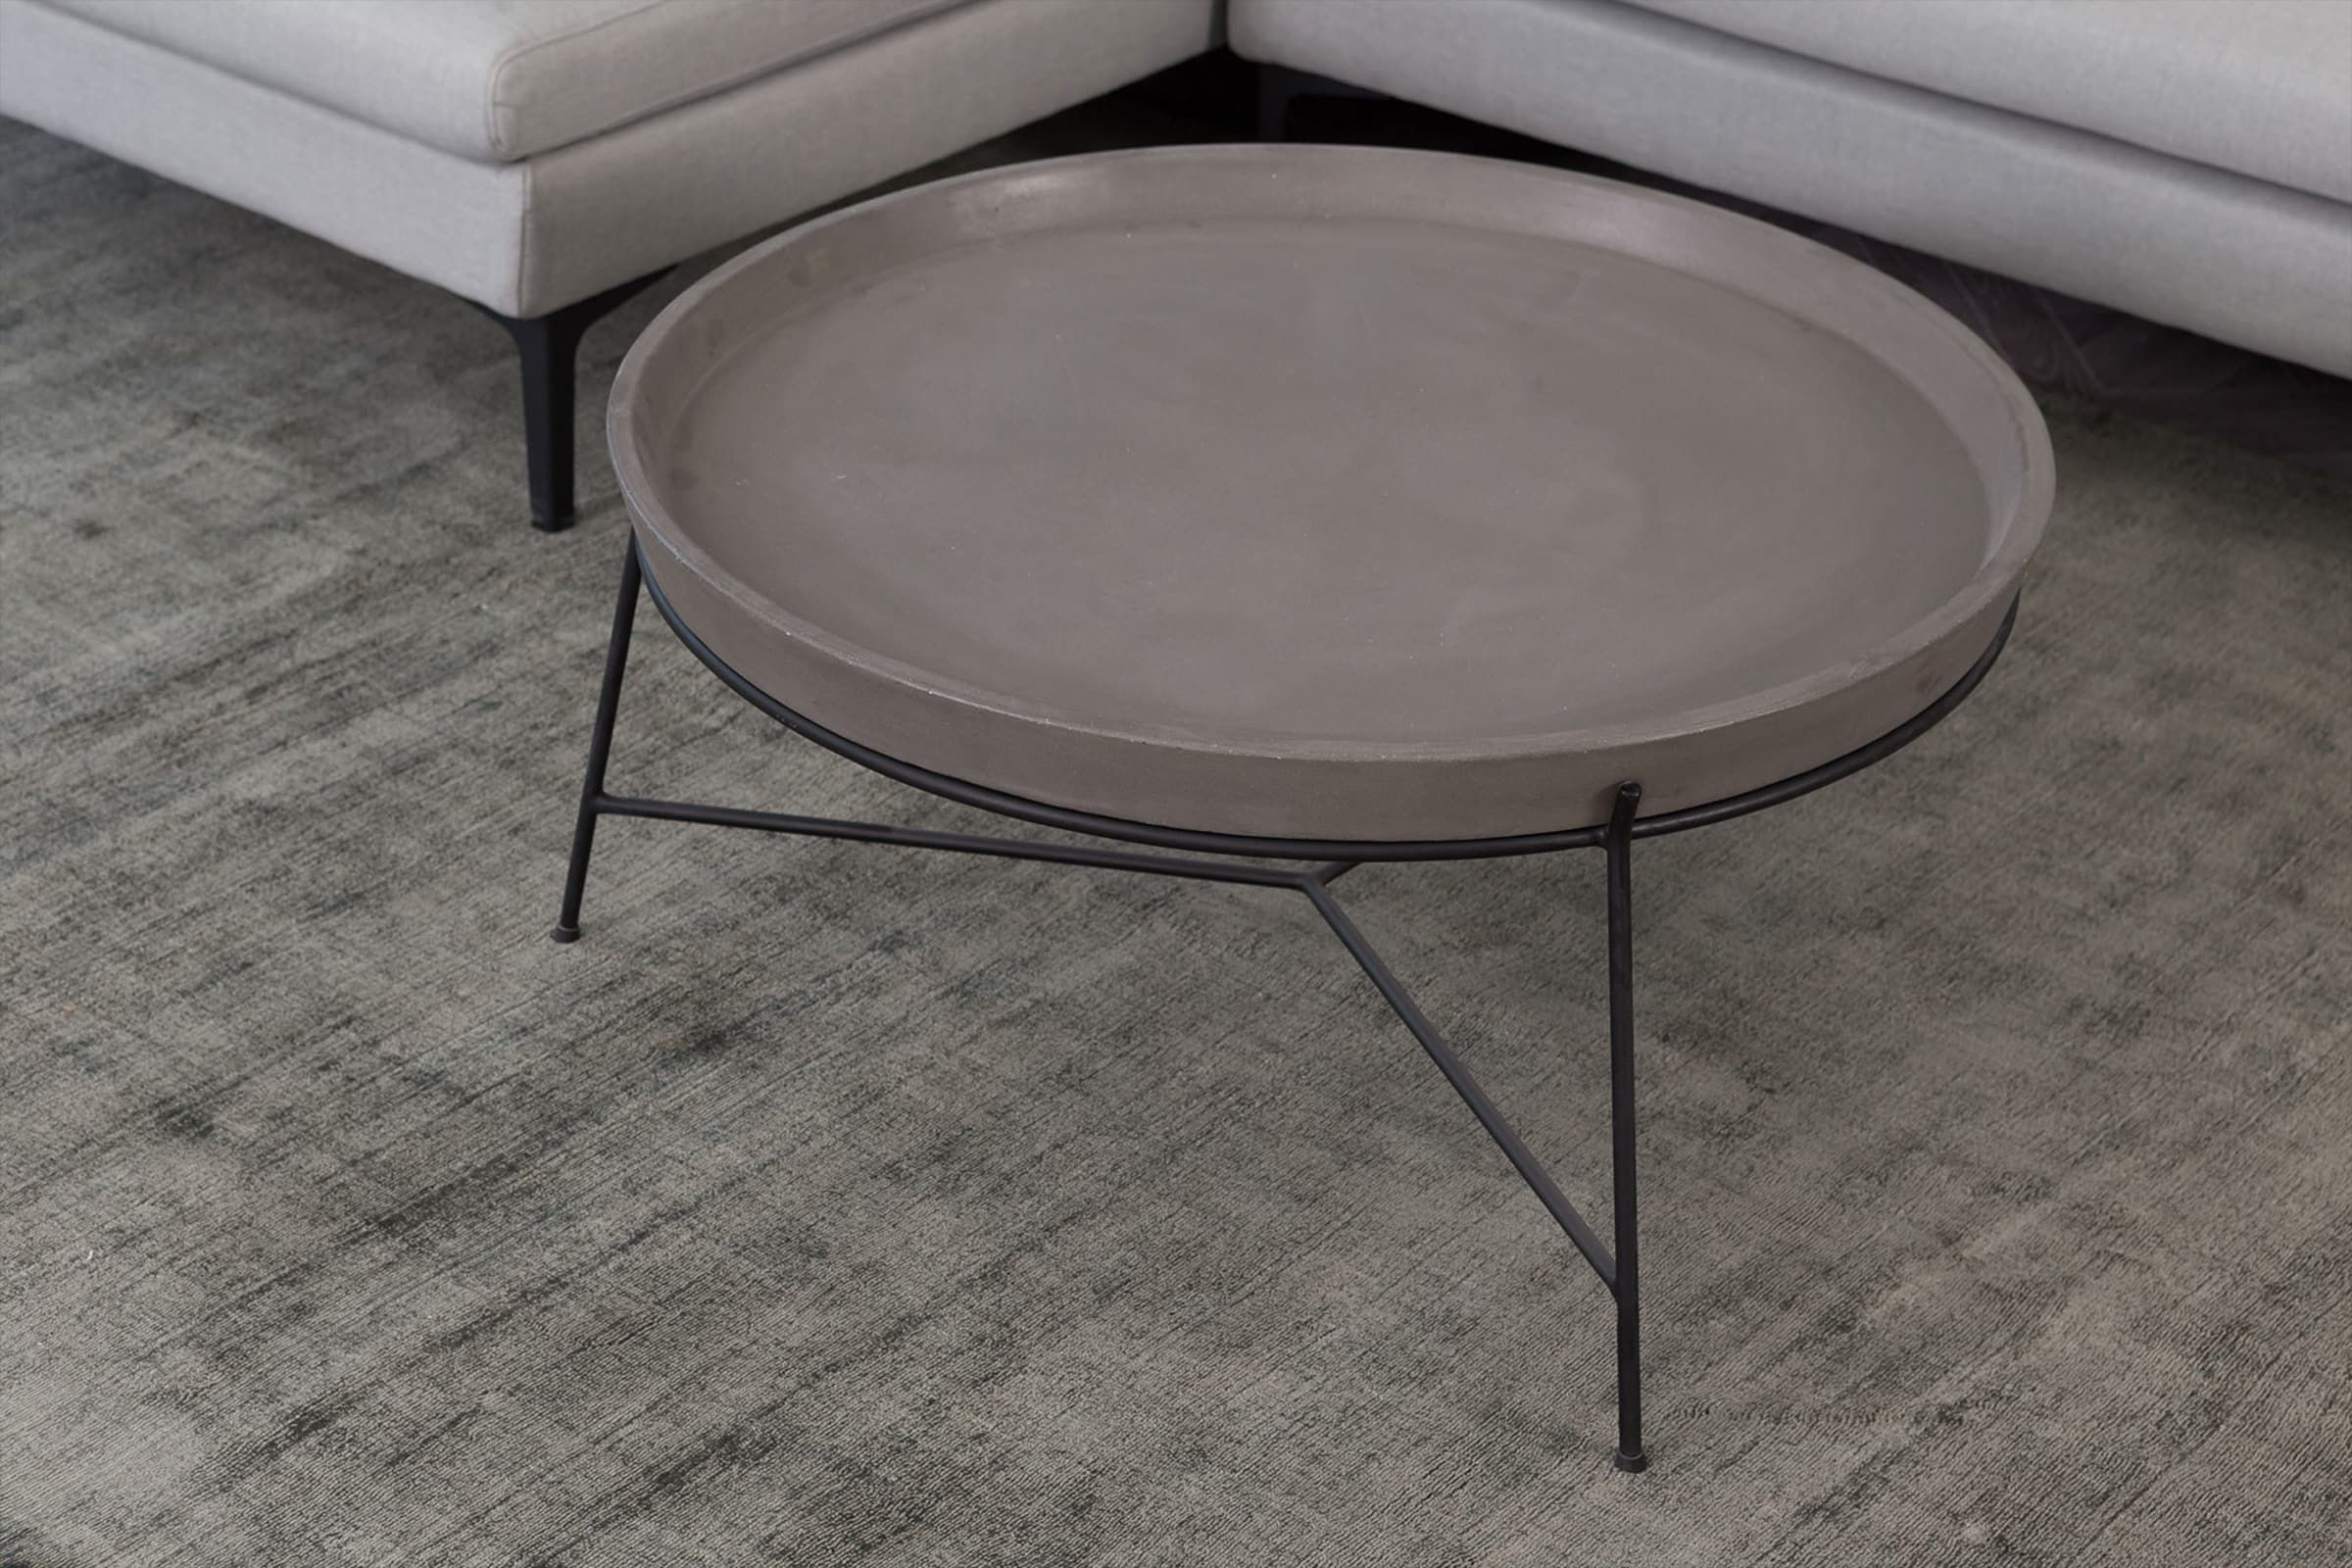 Enfield Coffee Table D1 Coffee Table Round Coffee Table Table [ 1600 x 2400 Pixel ]